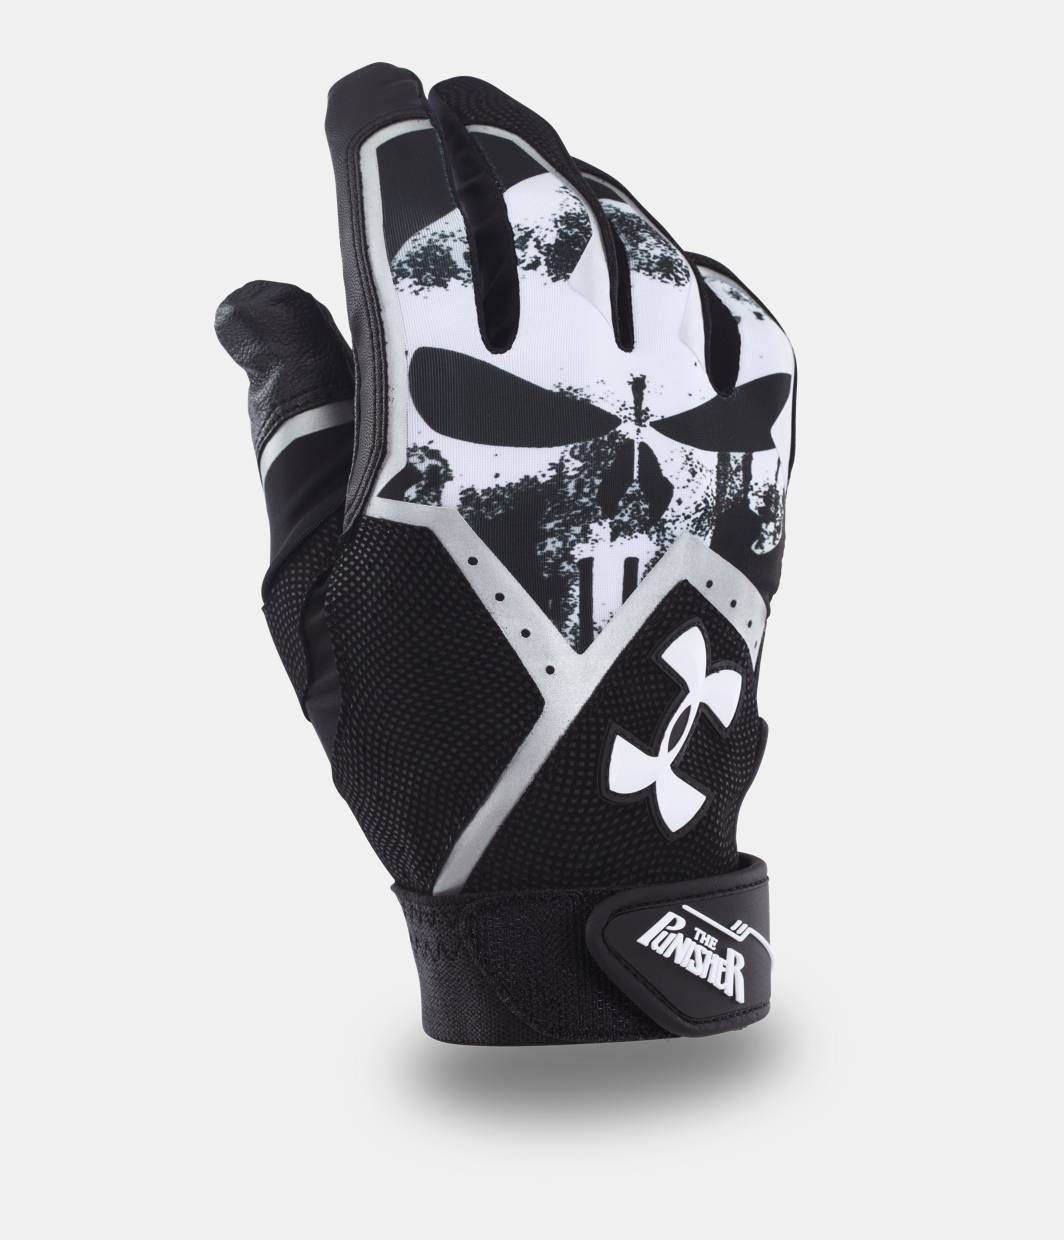 cb7e7be72e9 Shop Under Armour for Men s UA Punisher Clean-Up Batting Gloves in our Mens  Full Finger Gloves department. Free shipping is available in US.